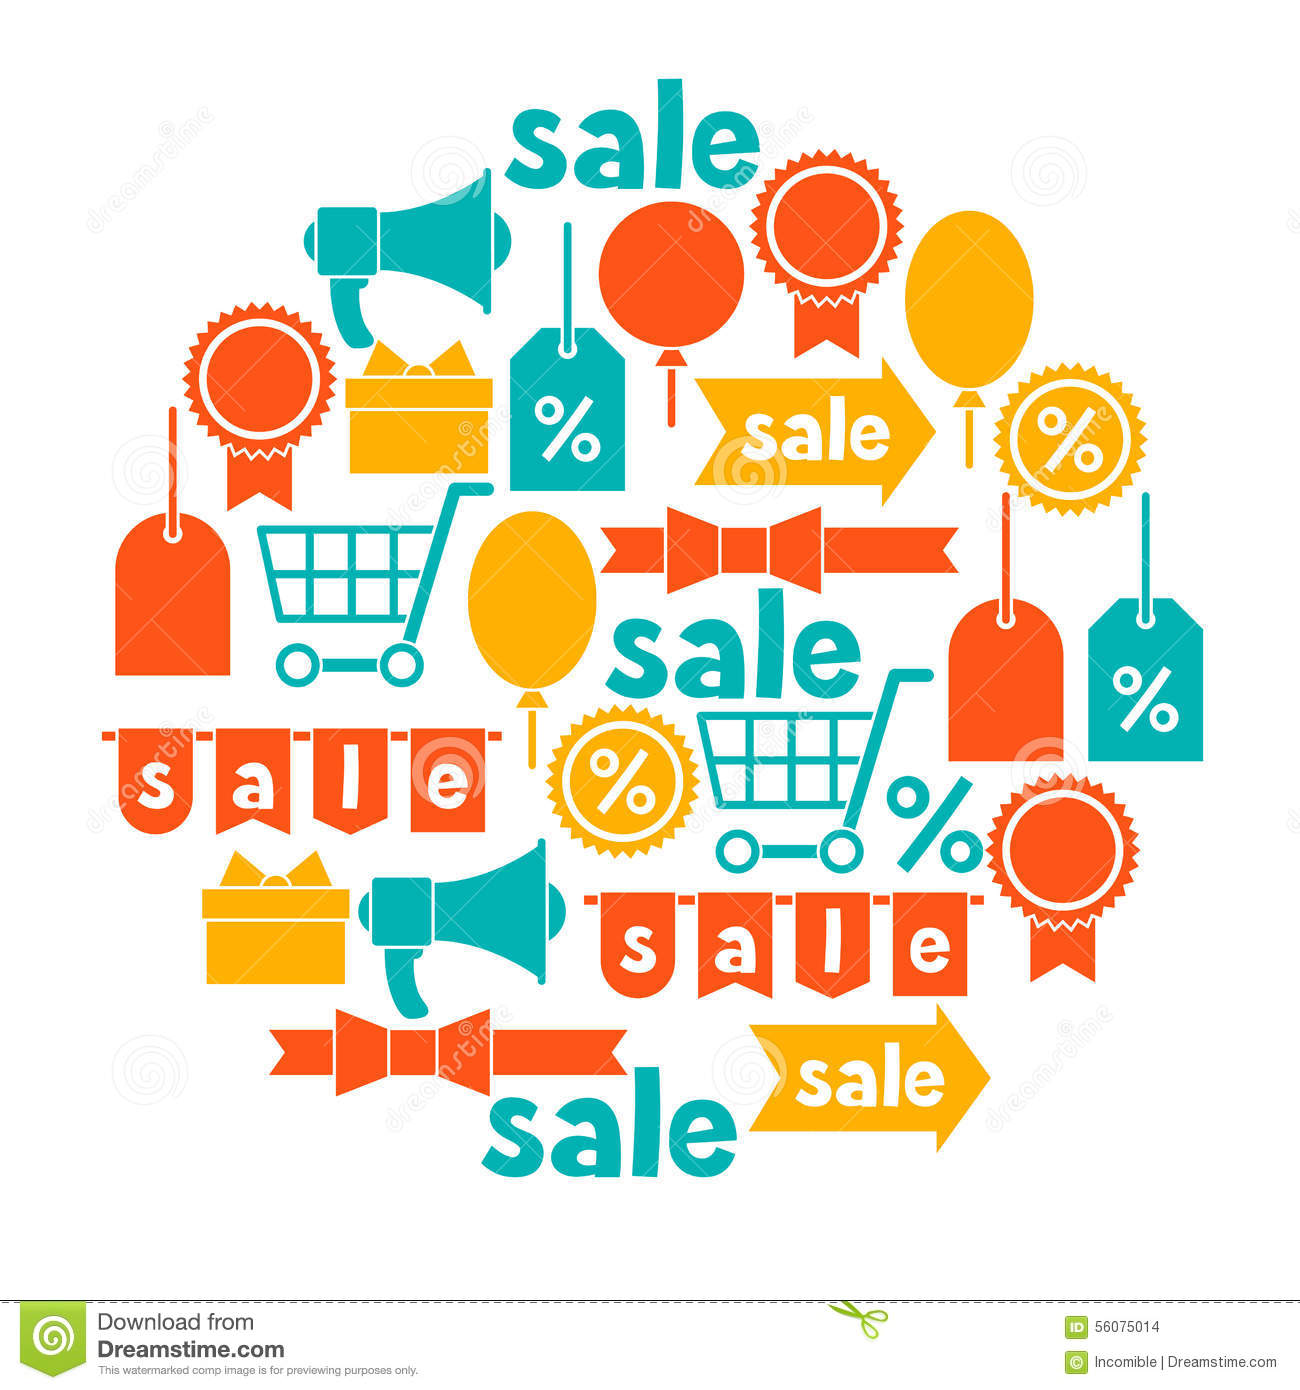 On sale shopping online